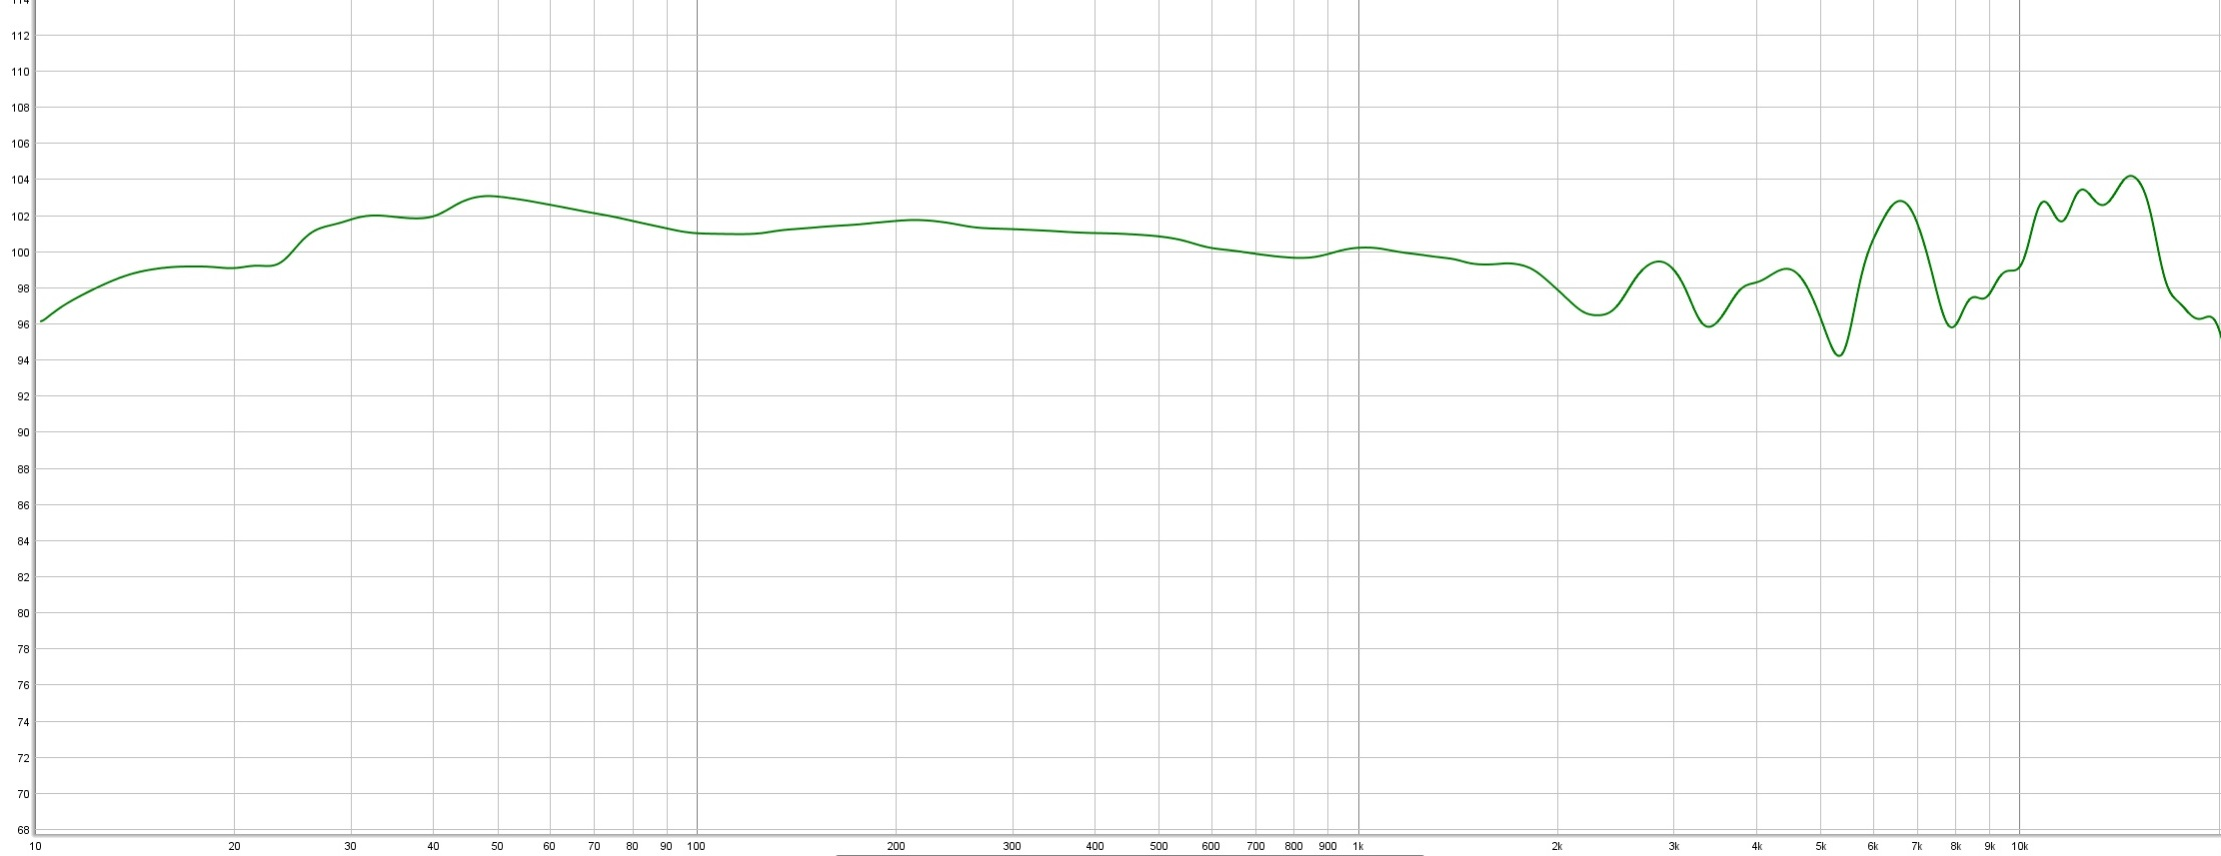 Wired Frequency Response on the Bose QC35